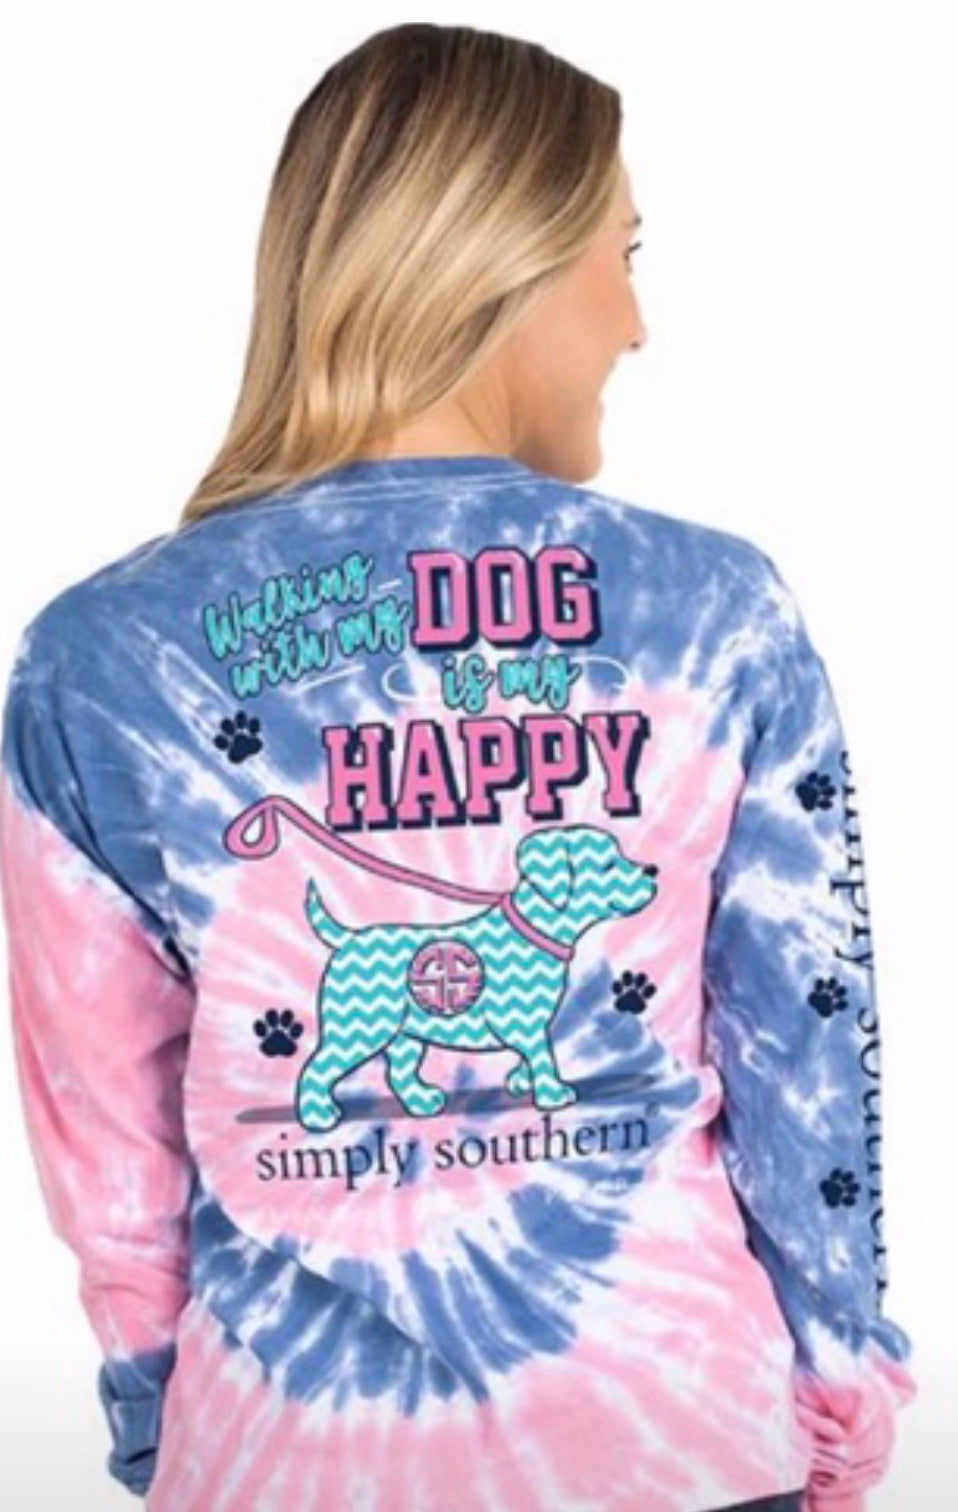 Simply Southern ~ Walking with my dog Tie Dye